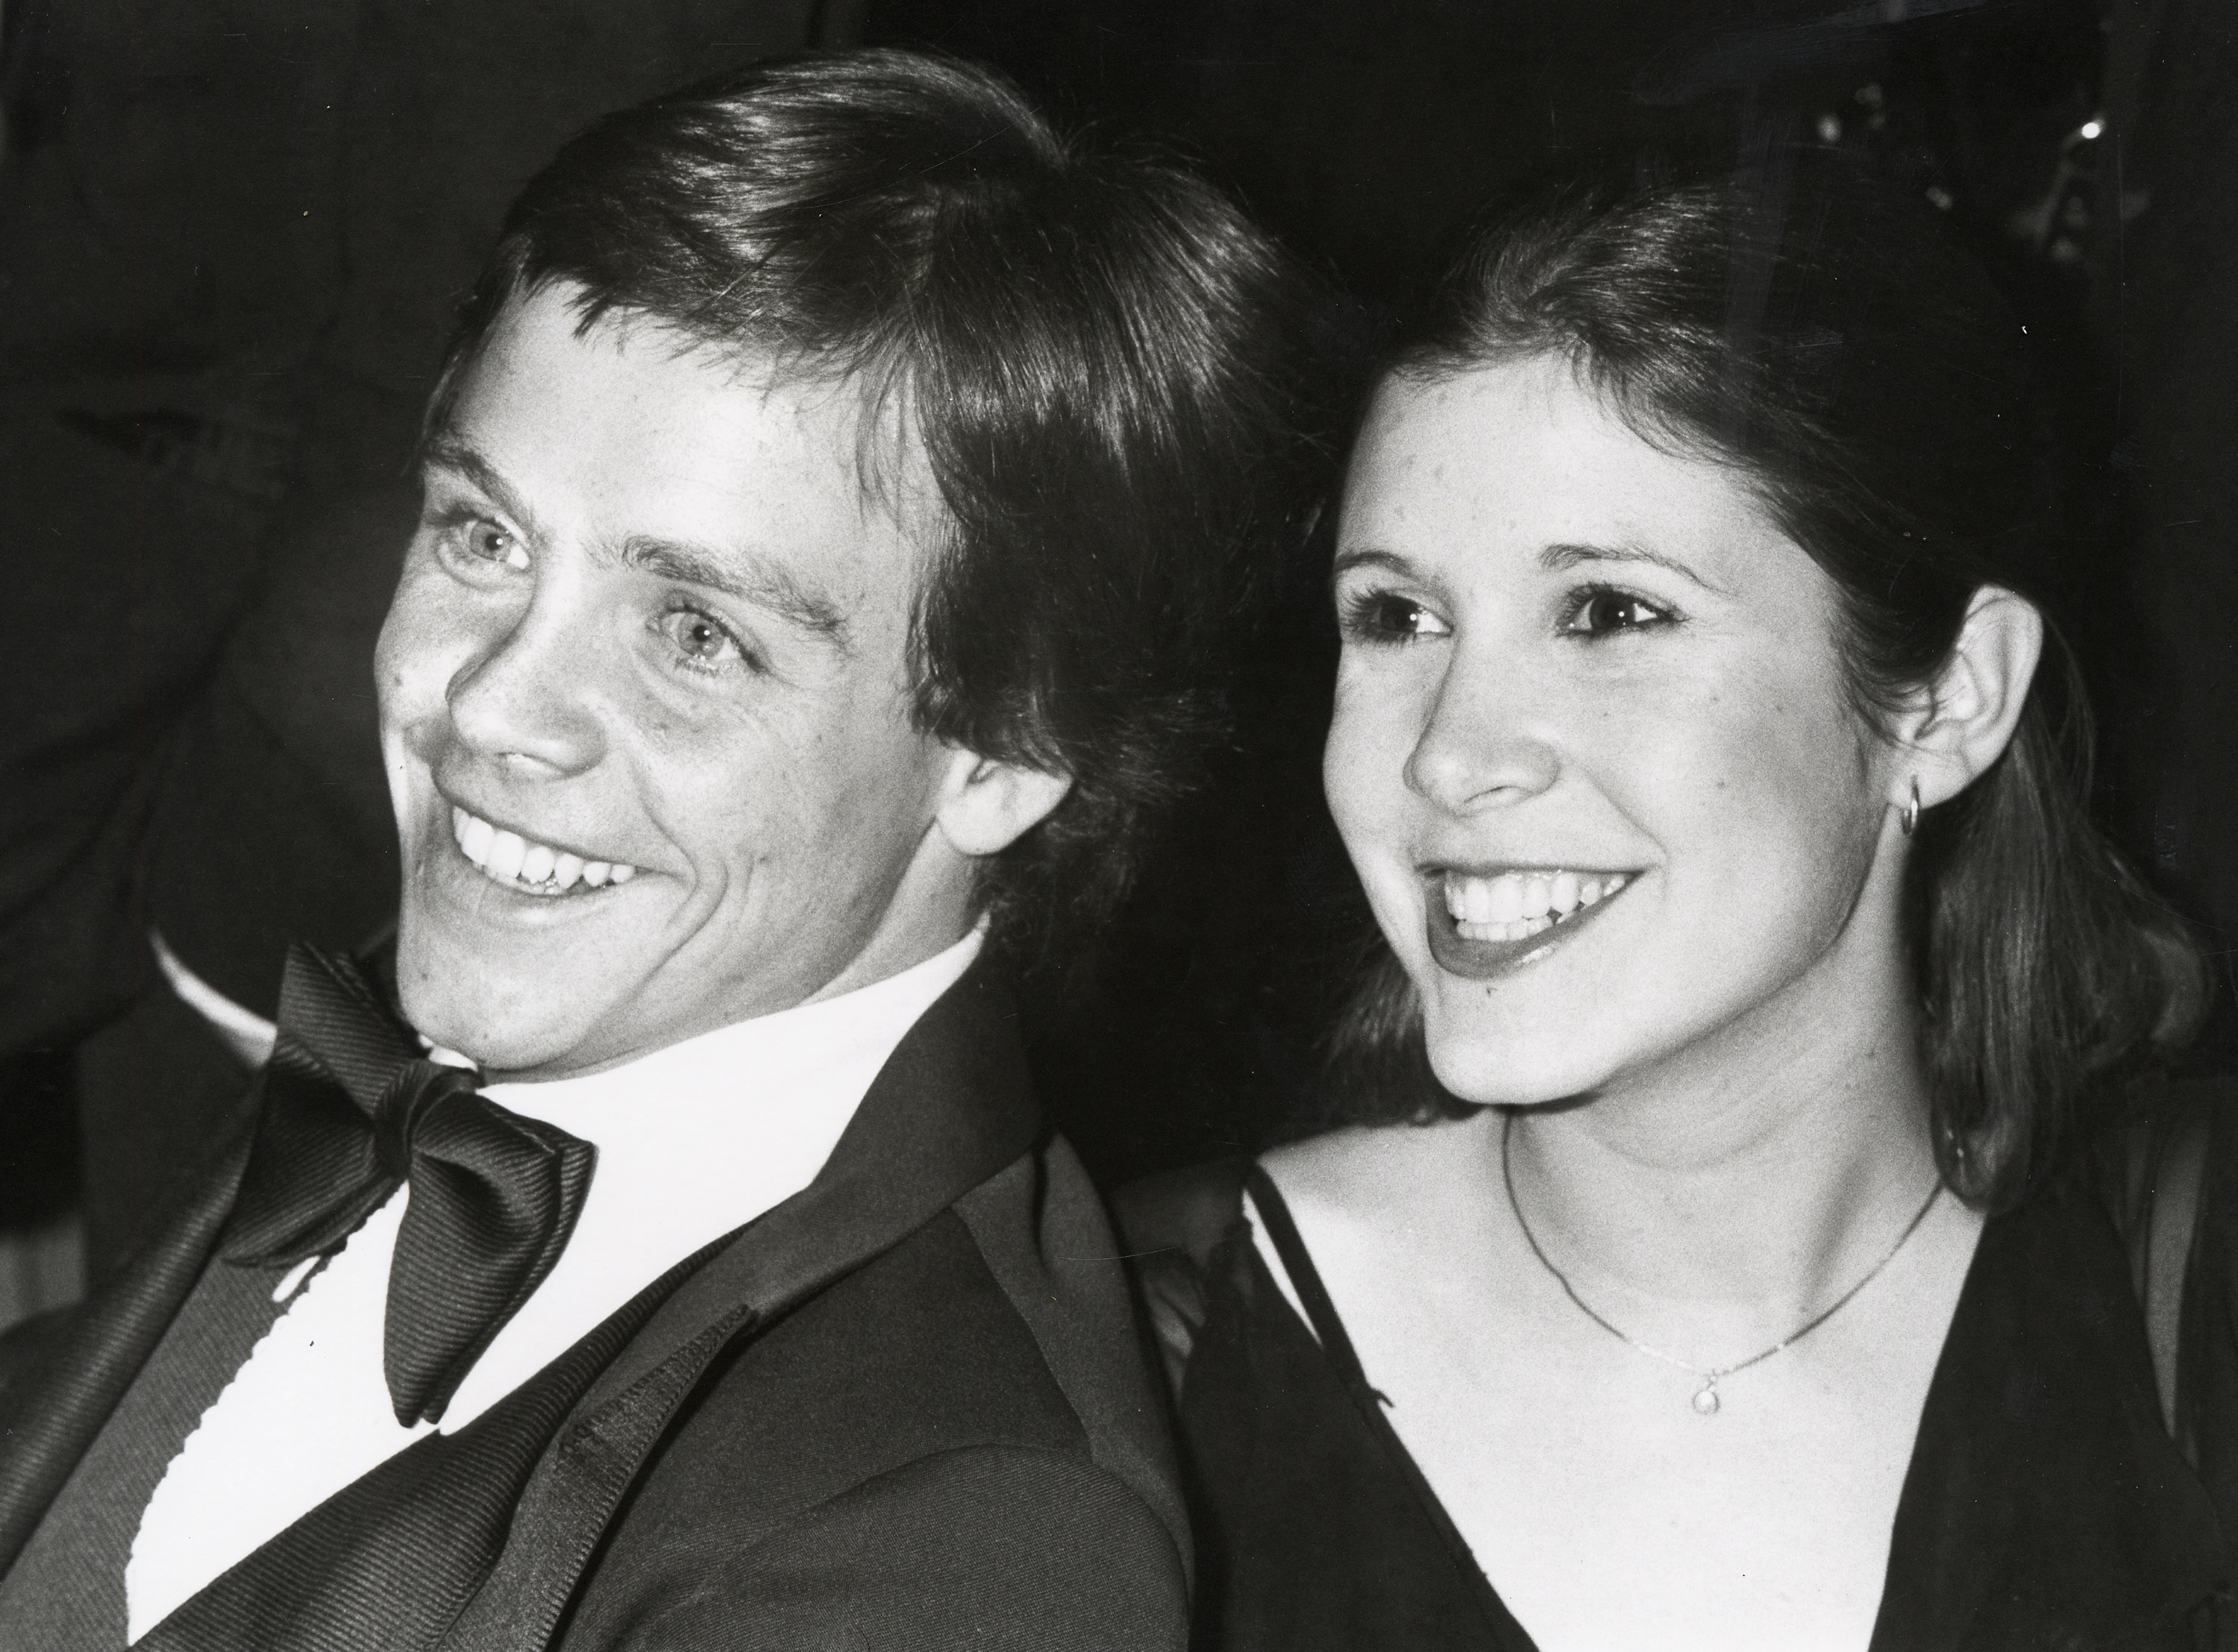 Mark Hamill has written another statement about Carrie Fisher, and this one has us bawling